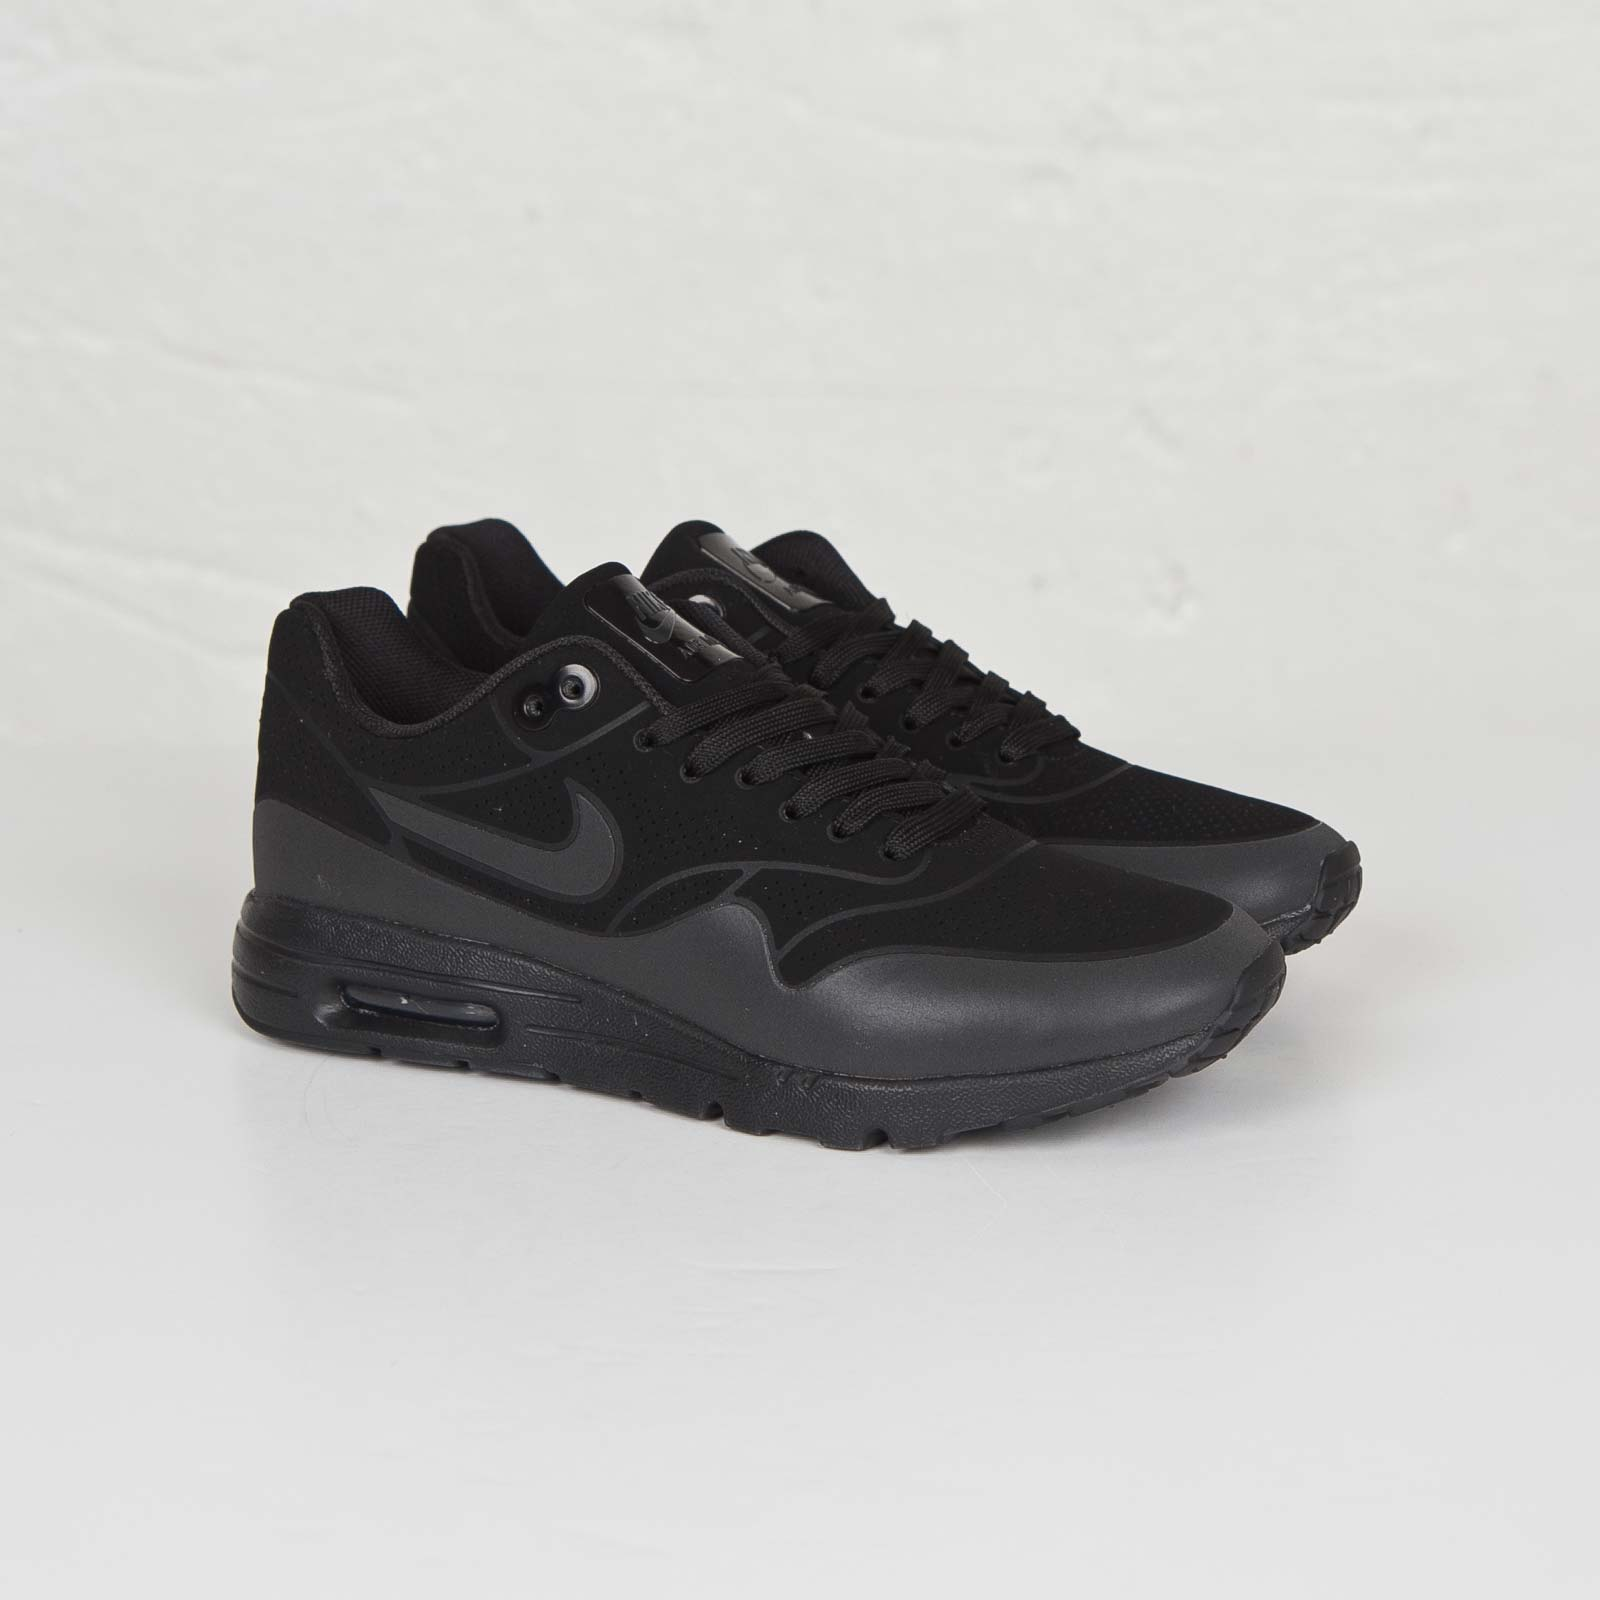 low cost f0fb1 7cf60 Nike Wmns Air Max 1 Ultra Moire